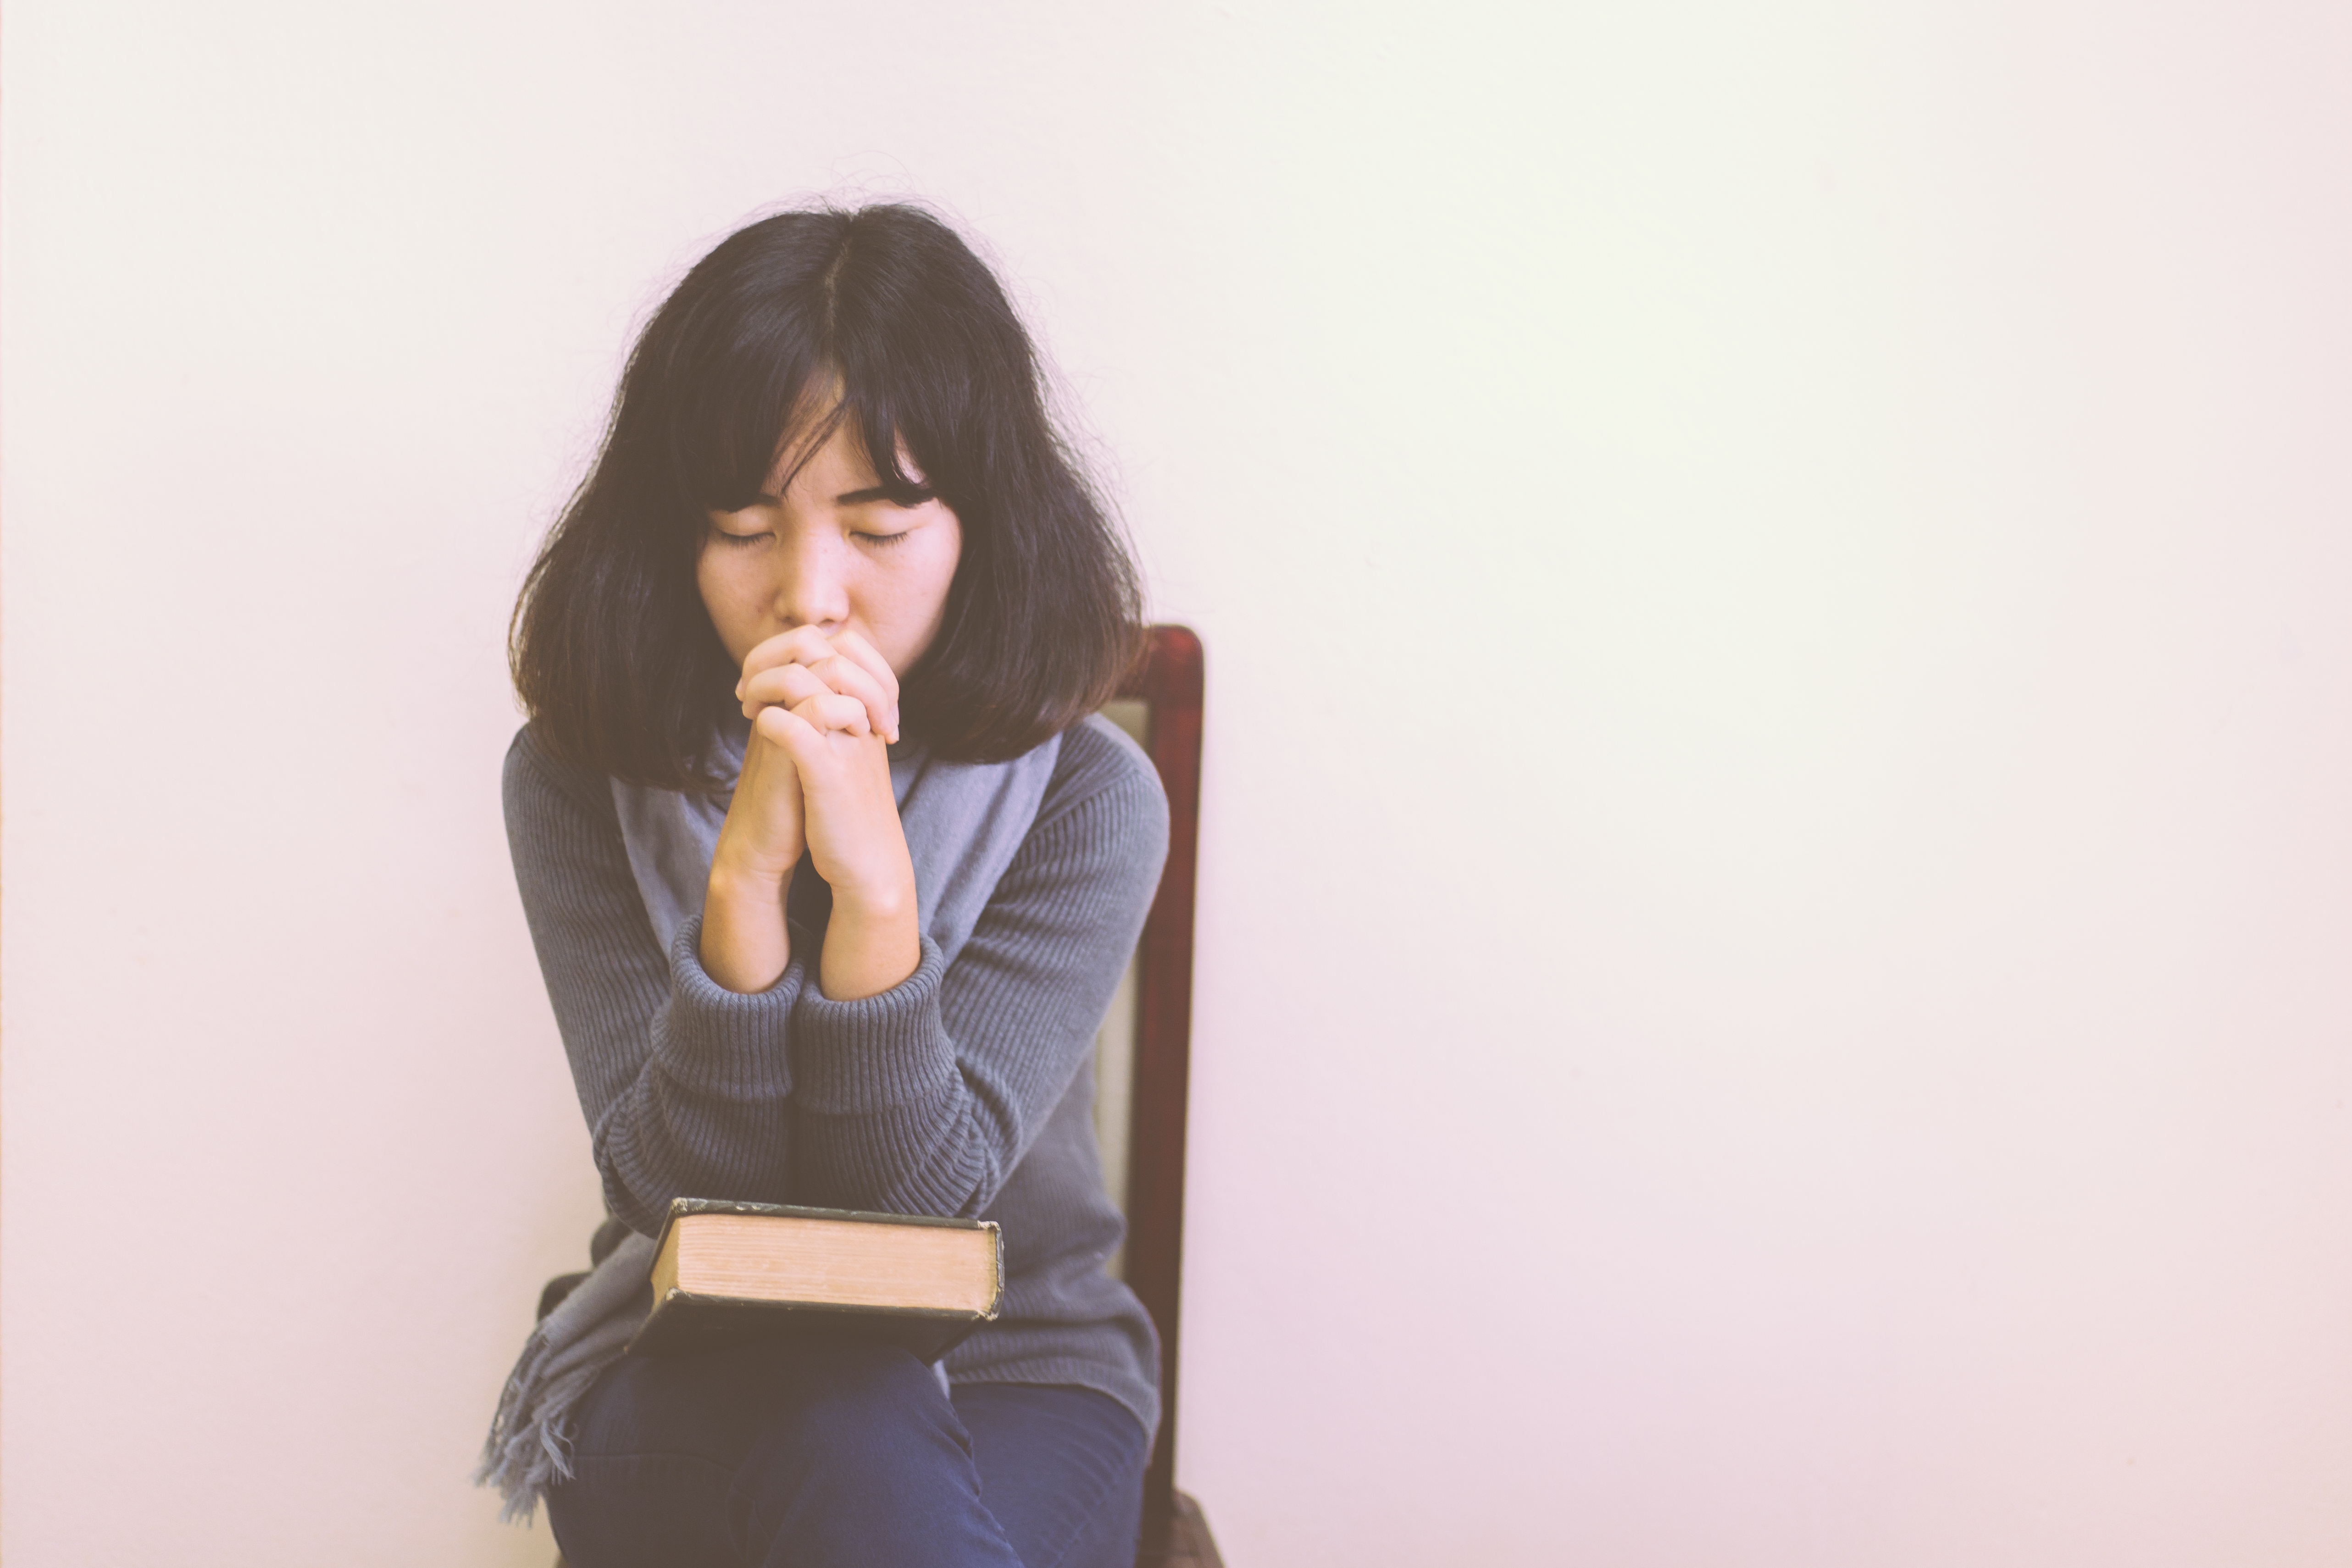 What Does the Bible Say About Emotional Abuse?